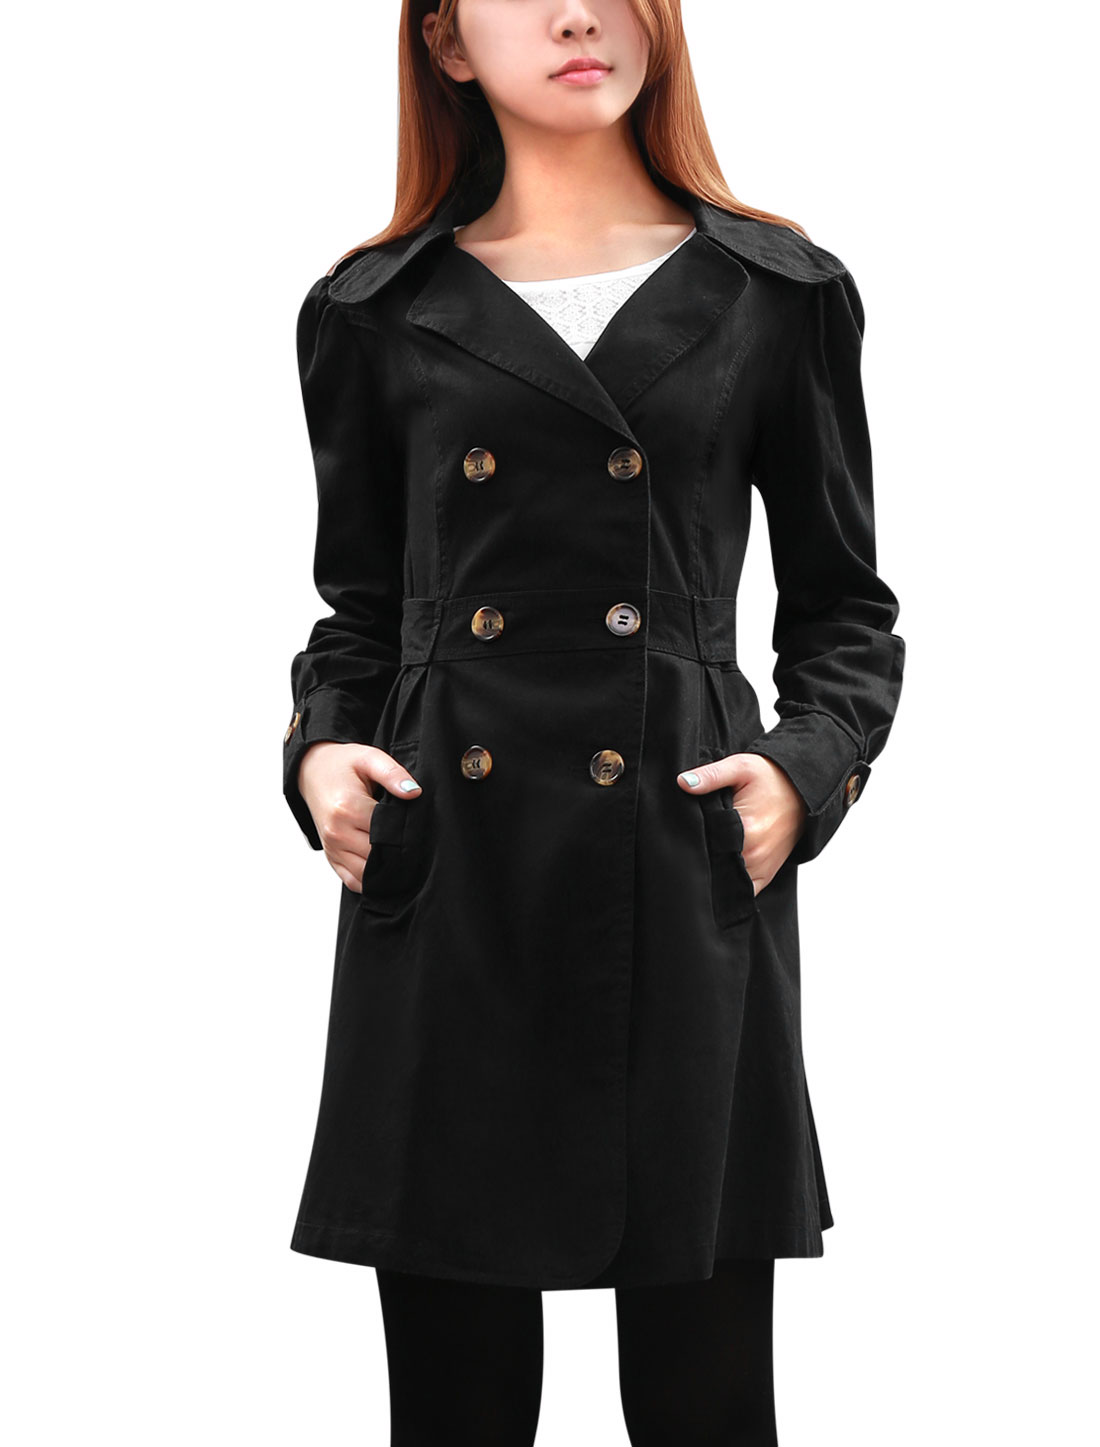 Women Long Sleeves Button-tab Cuffs Cool Trench Jacket Black XL